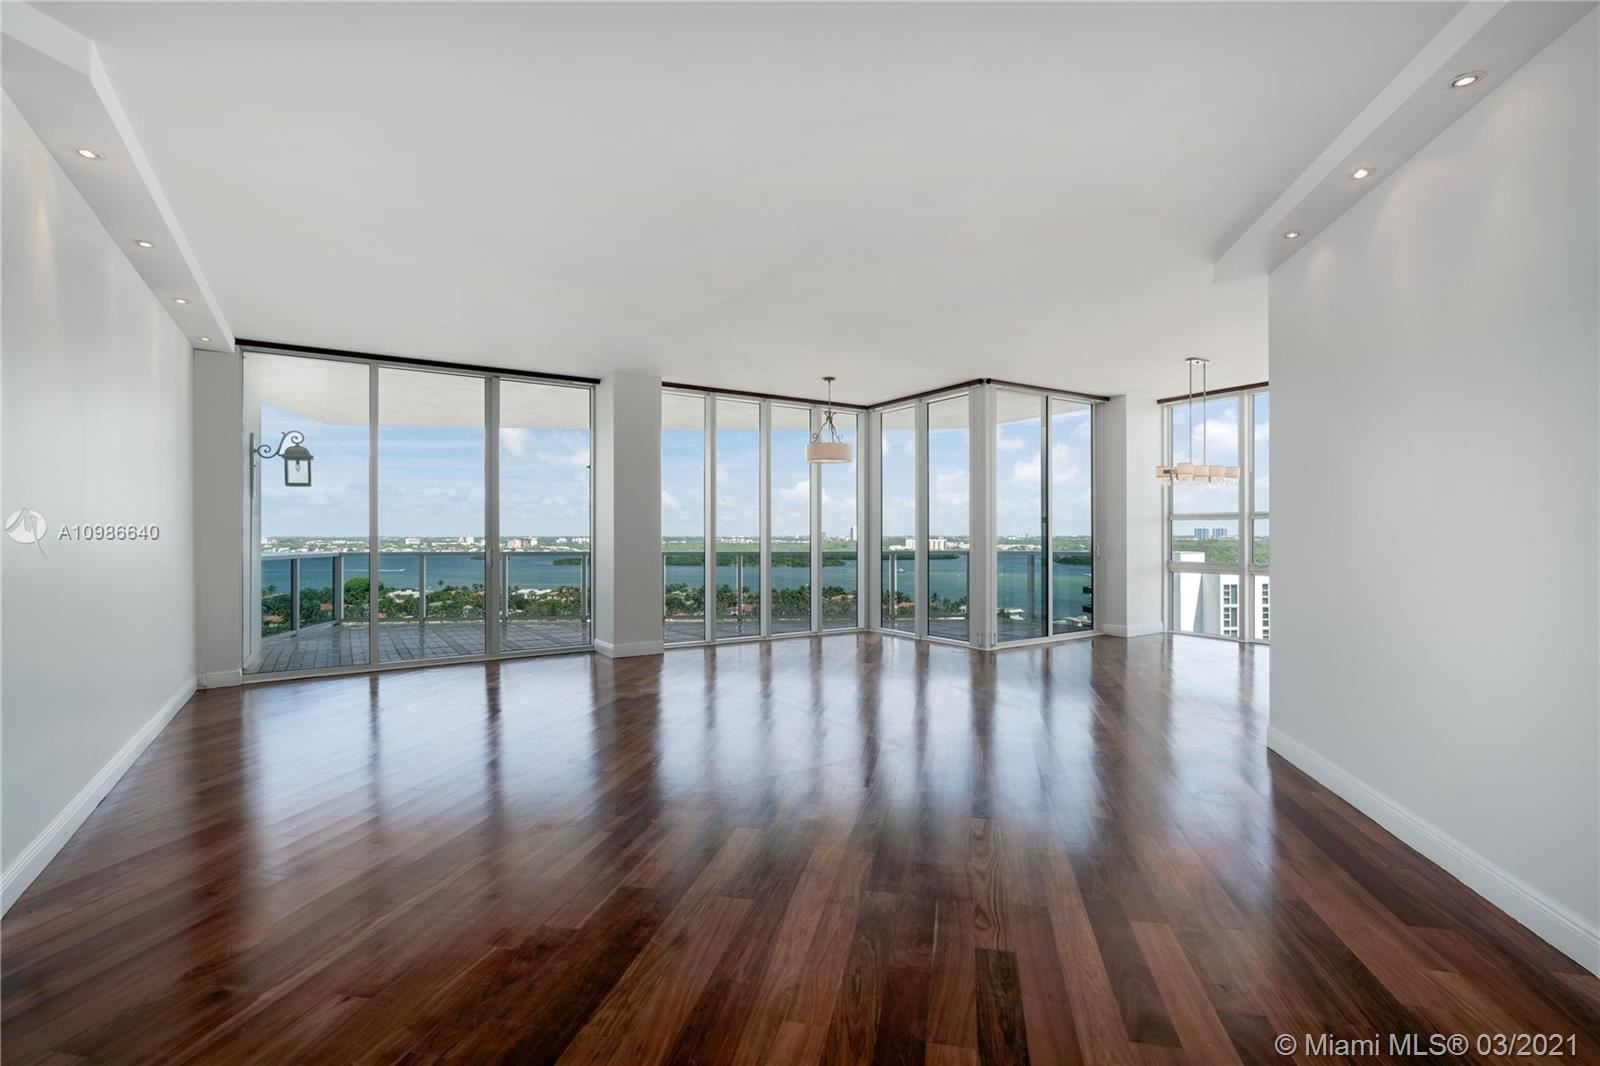 10225 Collins Ave #1503, Bal Harbour, FL 33154 - #: A10986640